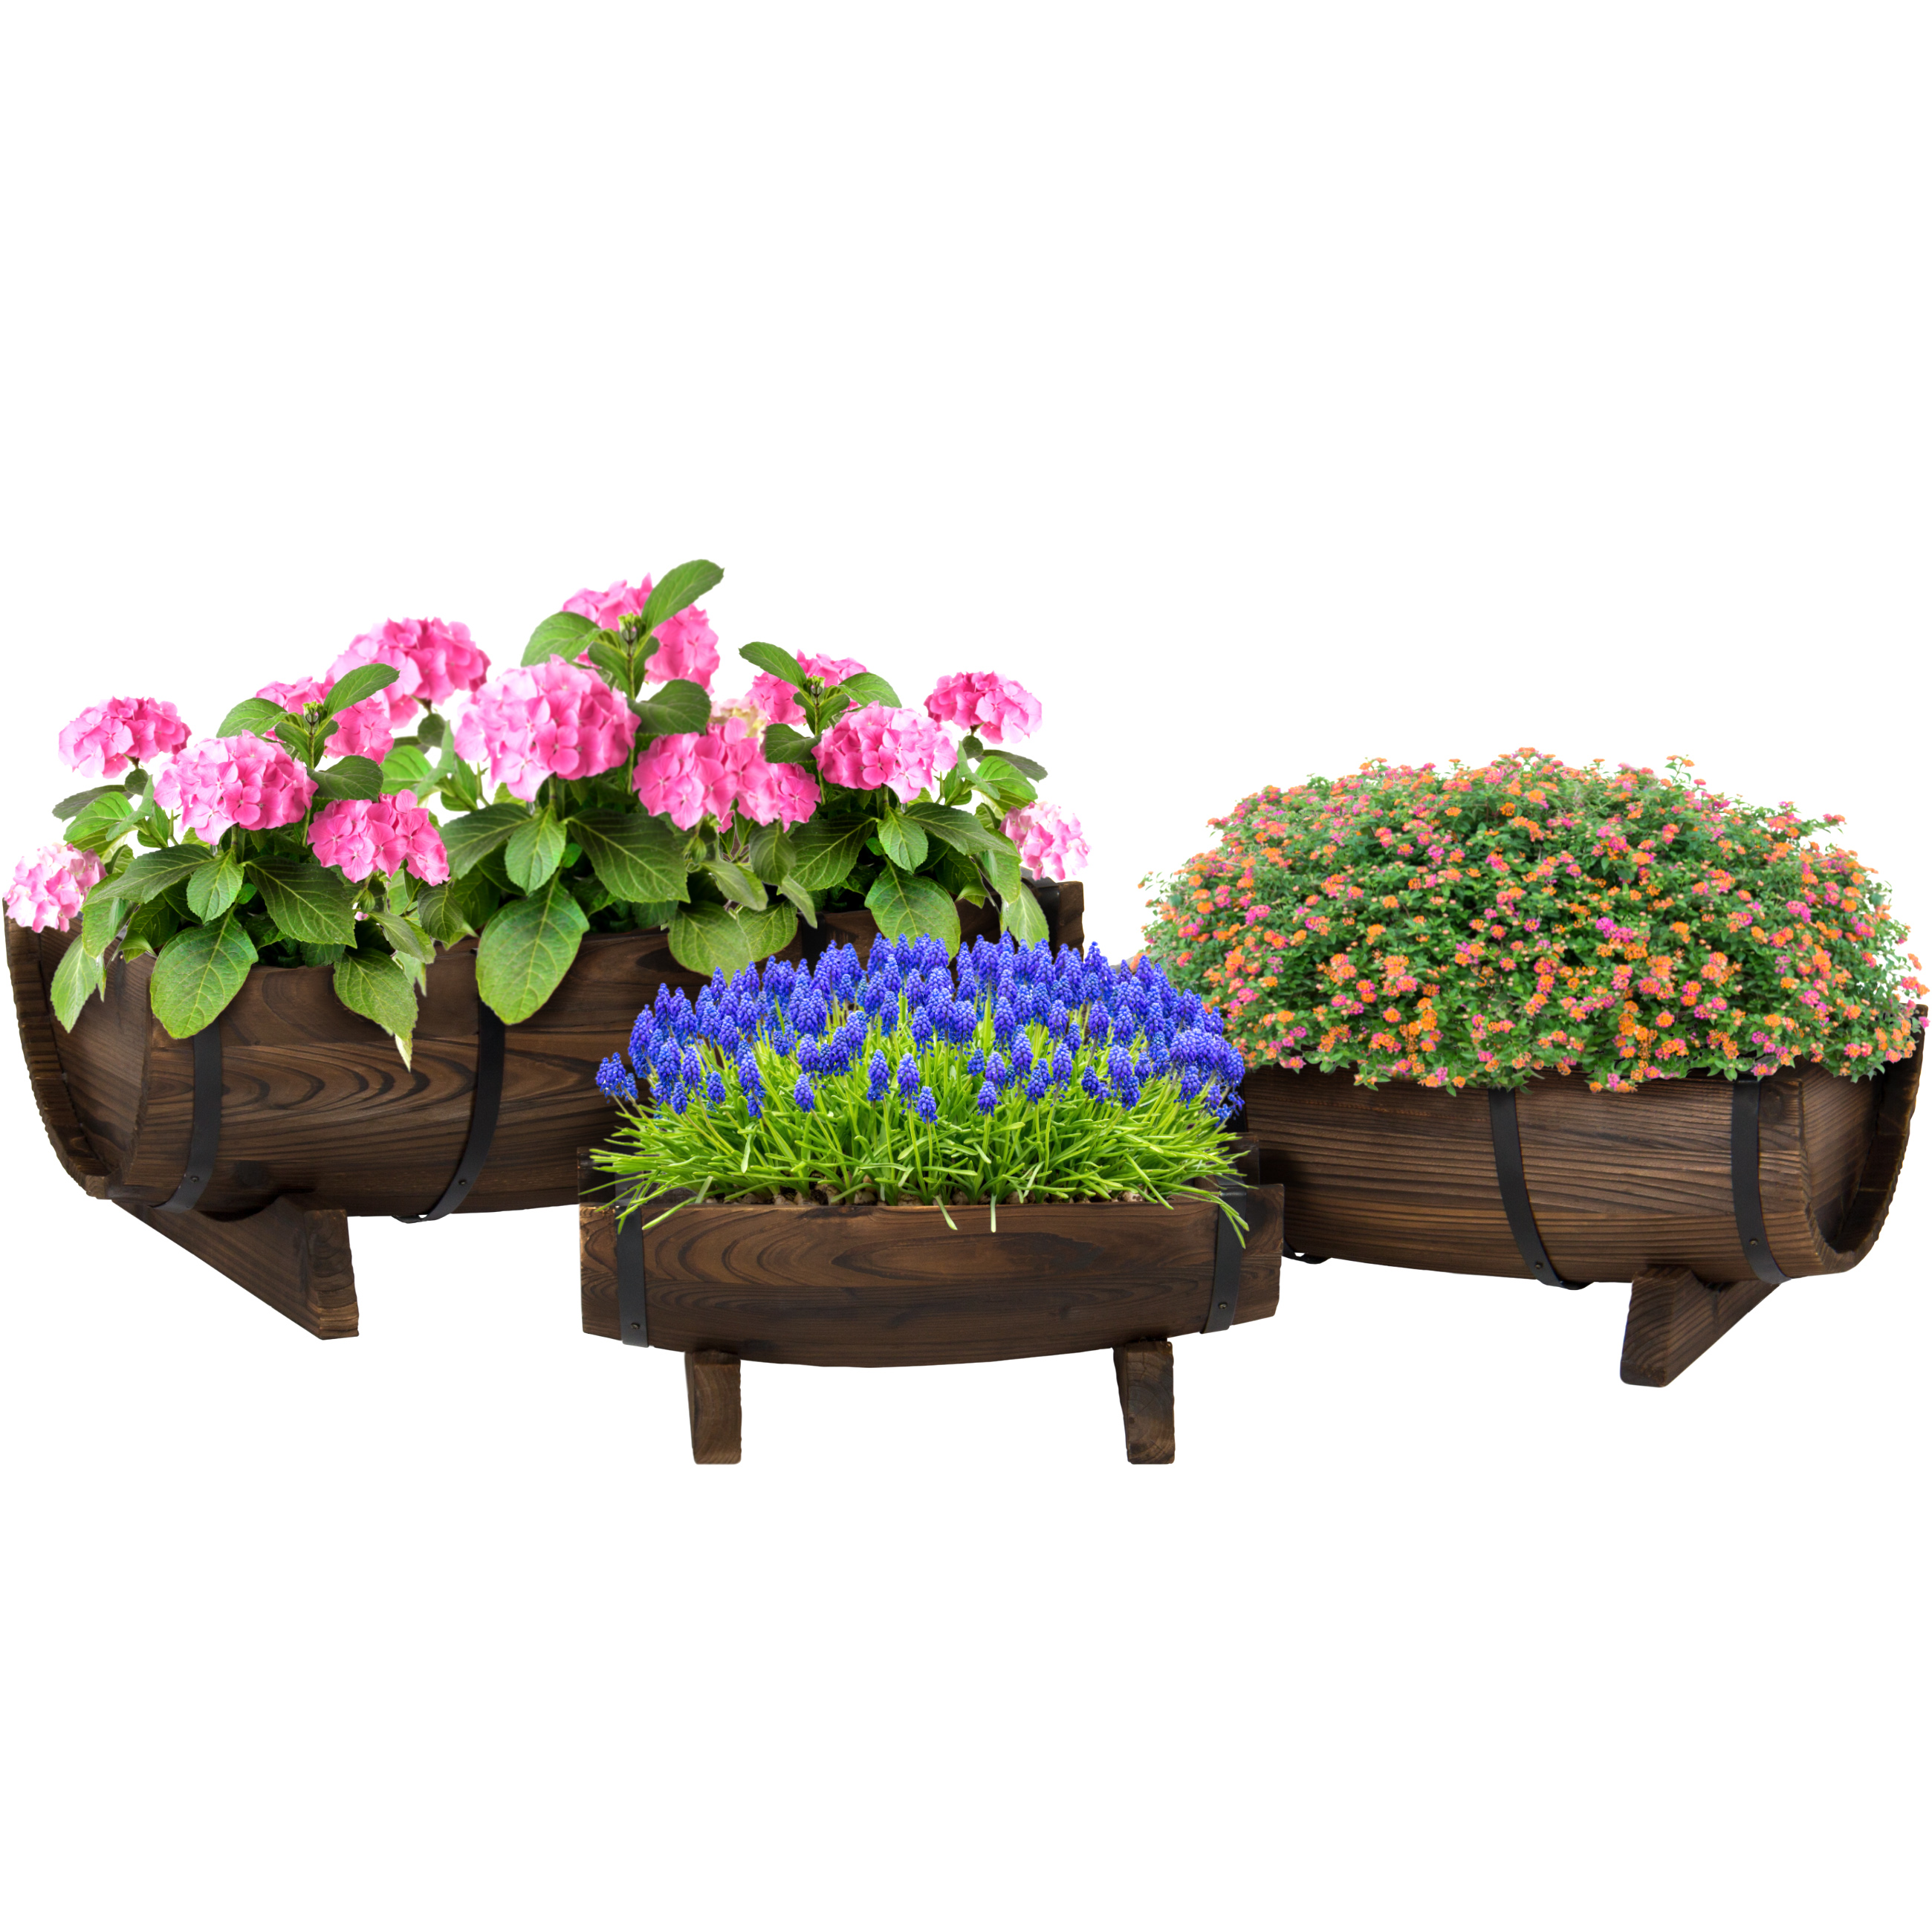 Best Choice Products Garden Decor Rustic Wood Set Of 3 Half Barrel Planter